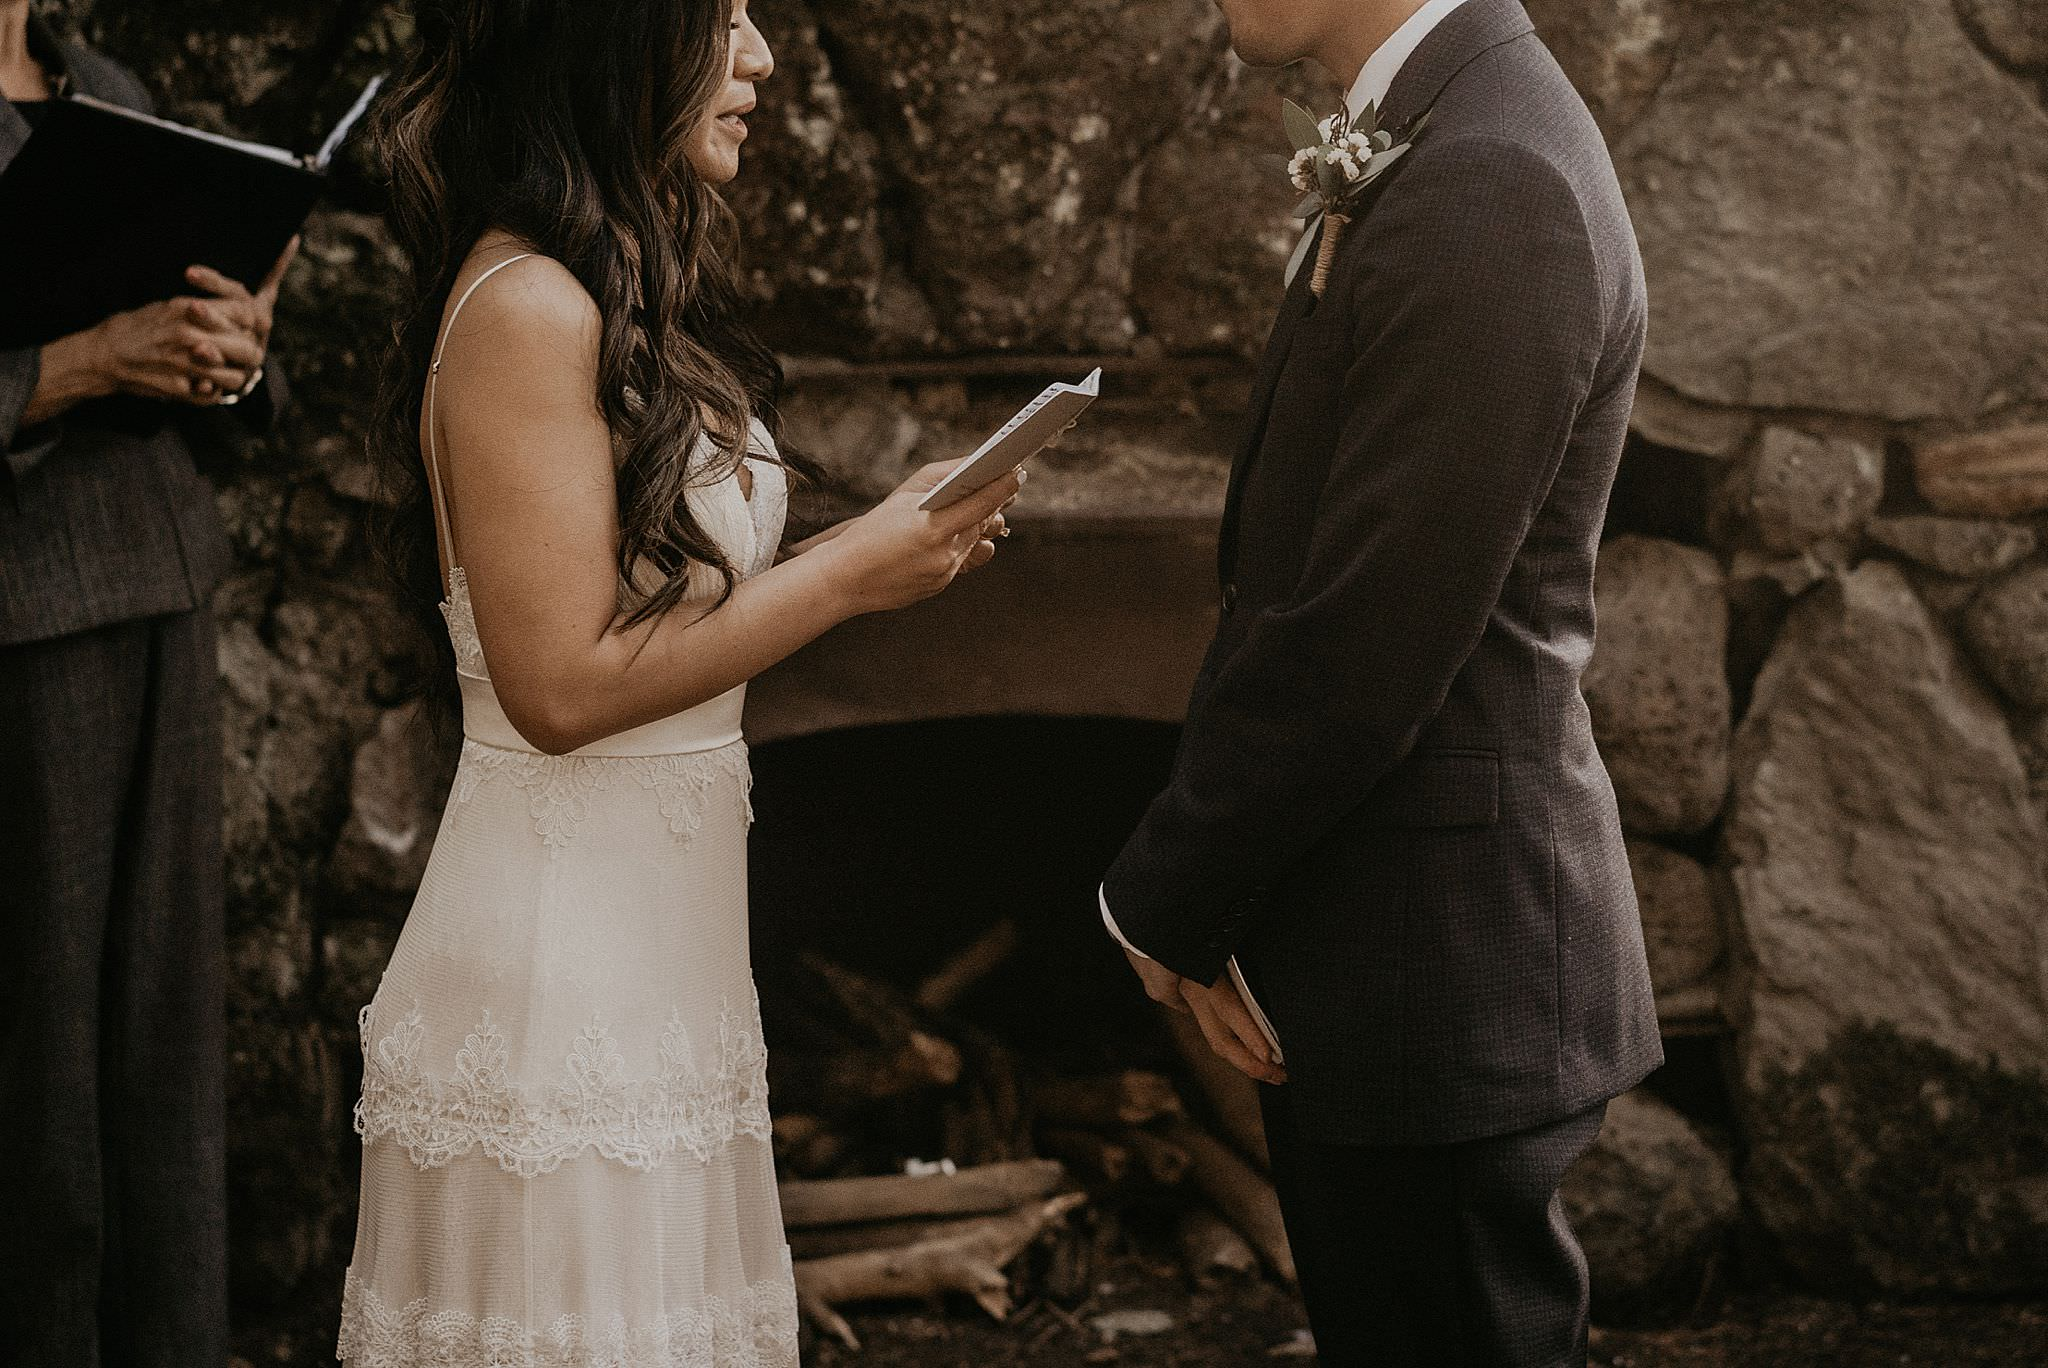 Bride reading her vows at the intimate wedding near columbia river gorge, skamania stone house